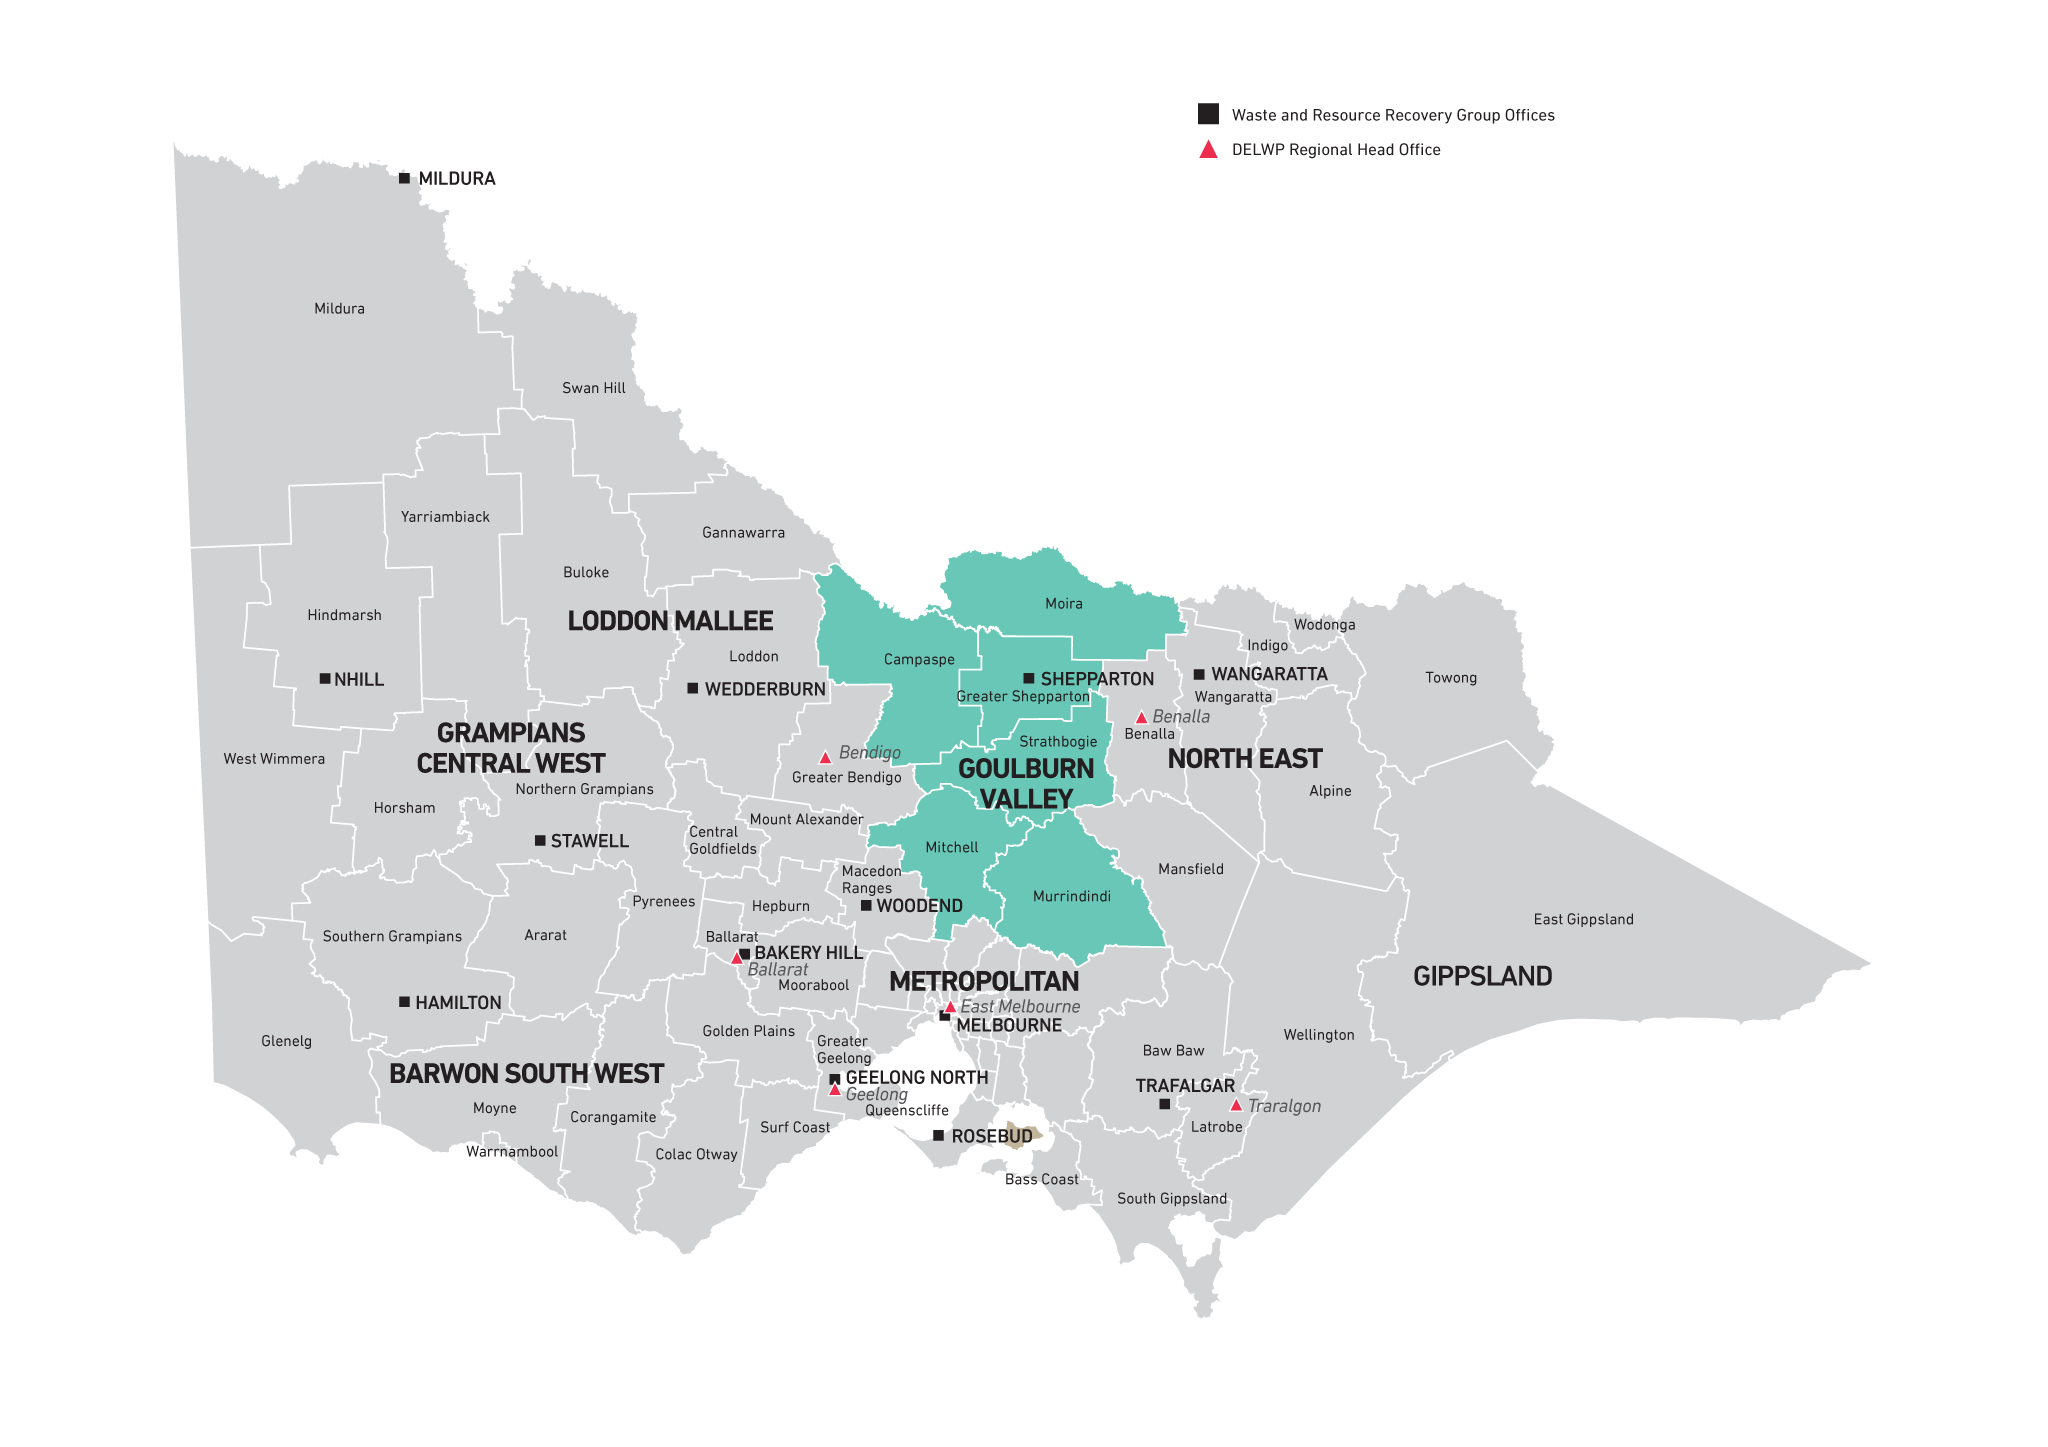 Map of Goulburn Valley Waste and Resource Recovery Region